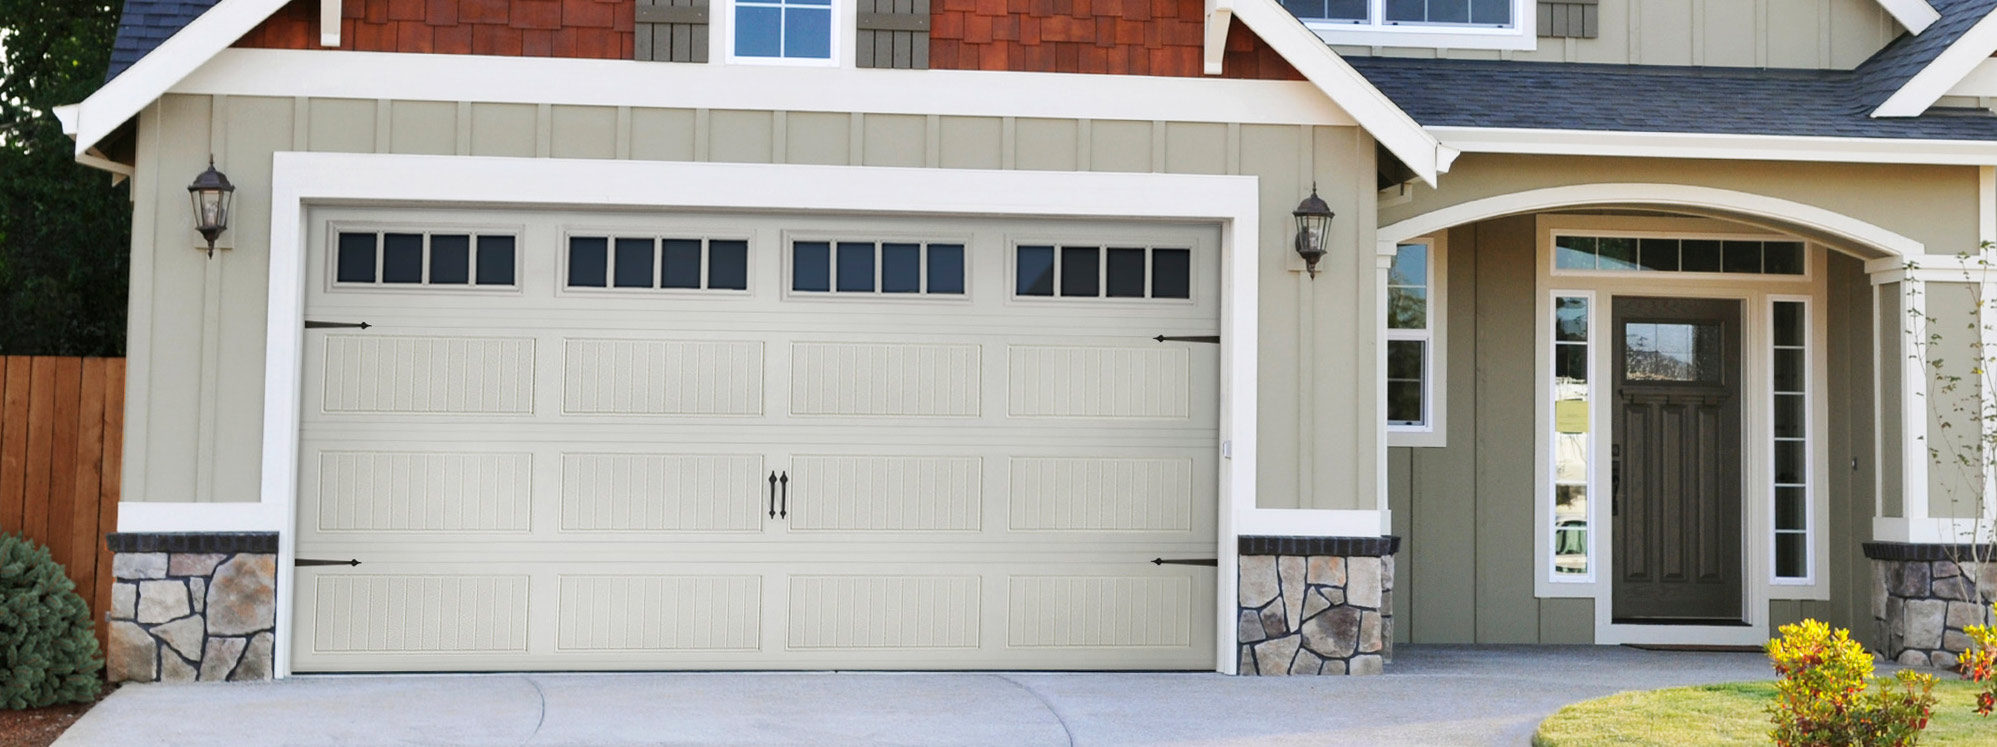 Grey Home With Matching Garage Door